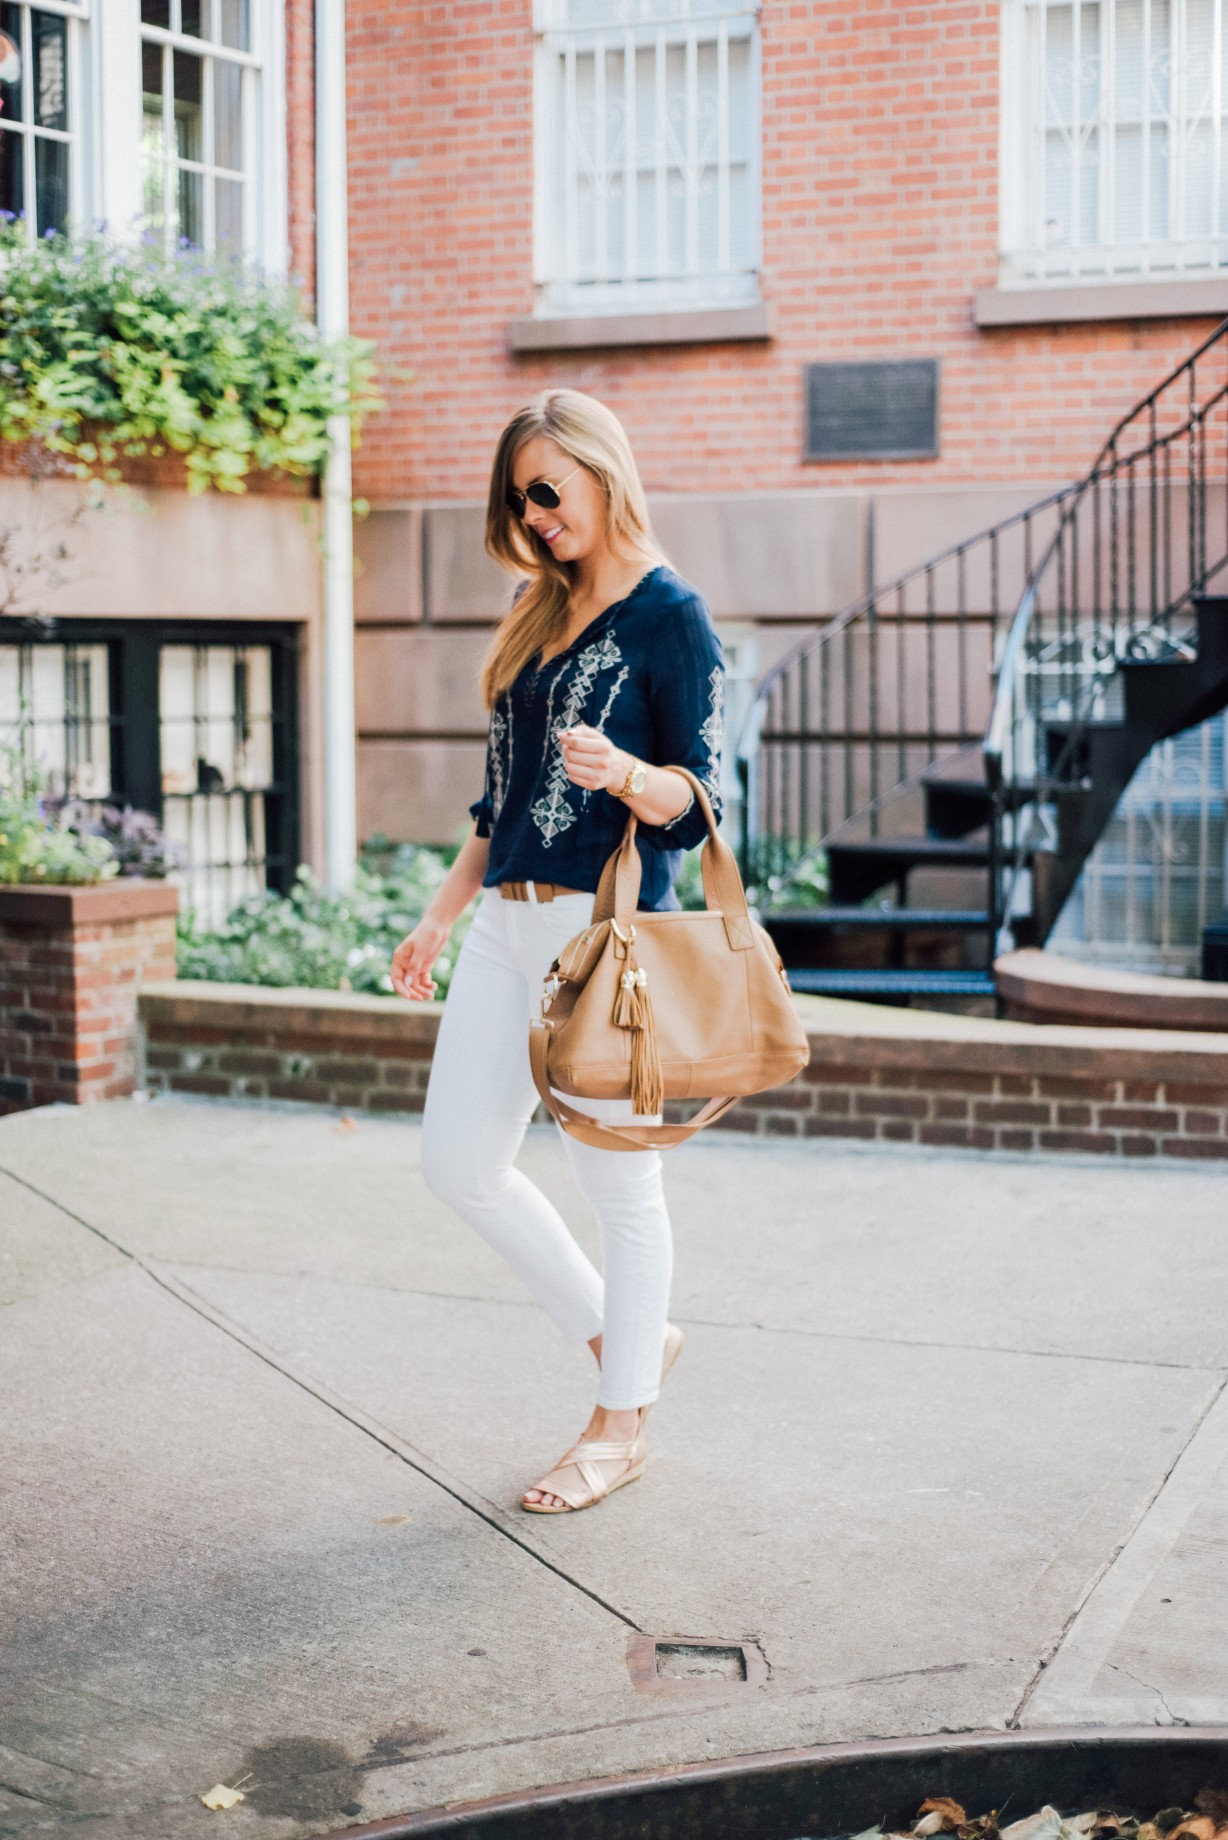 J Crew White Jeans Outfit Idea Boho Top Ray Ban Aviators Fashion Blogger West Village New York Lauren Slade Style Elixir 4